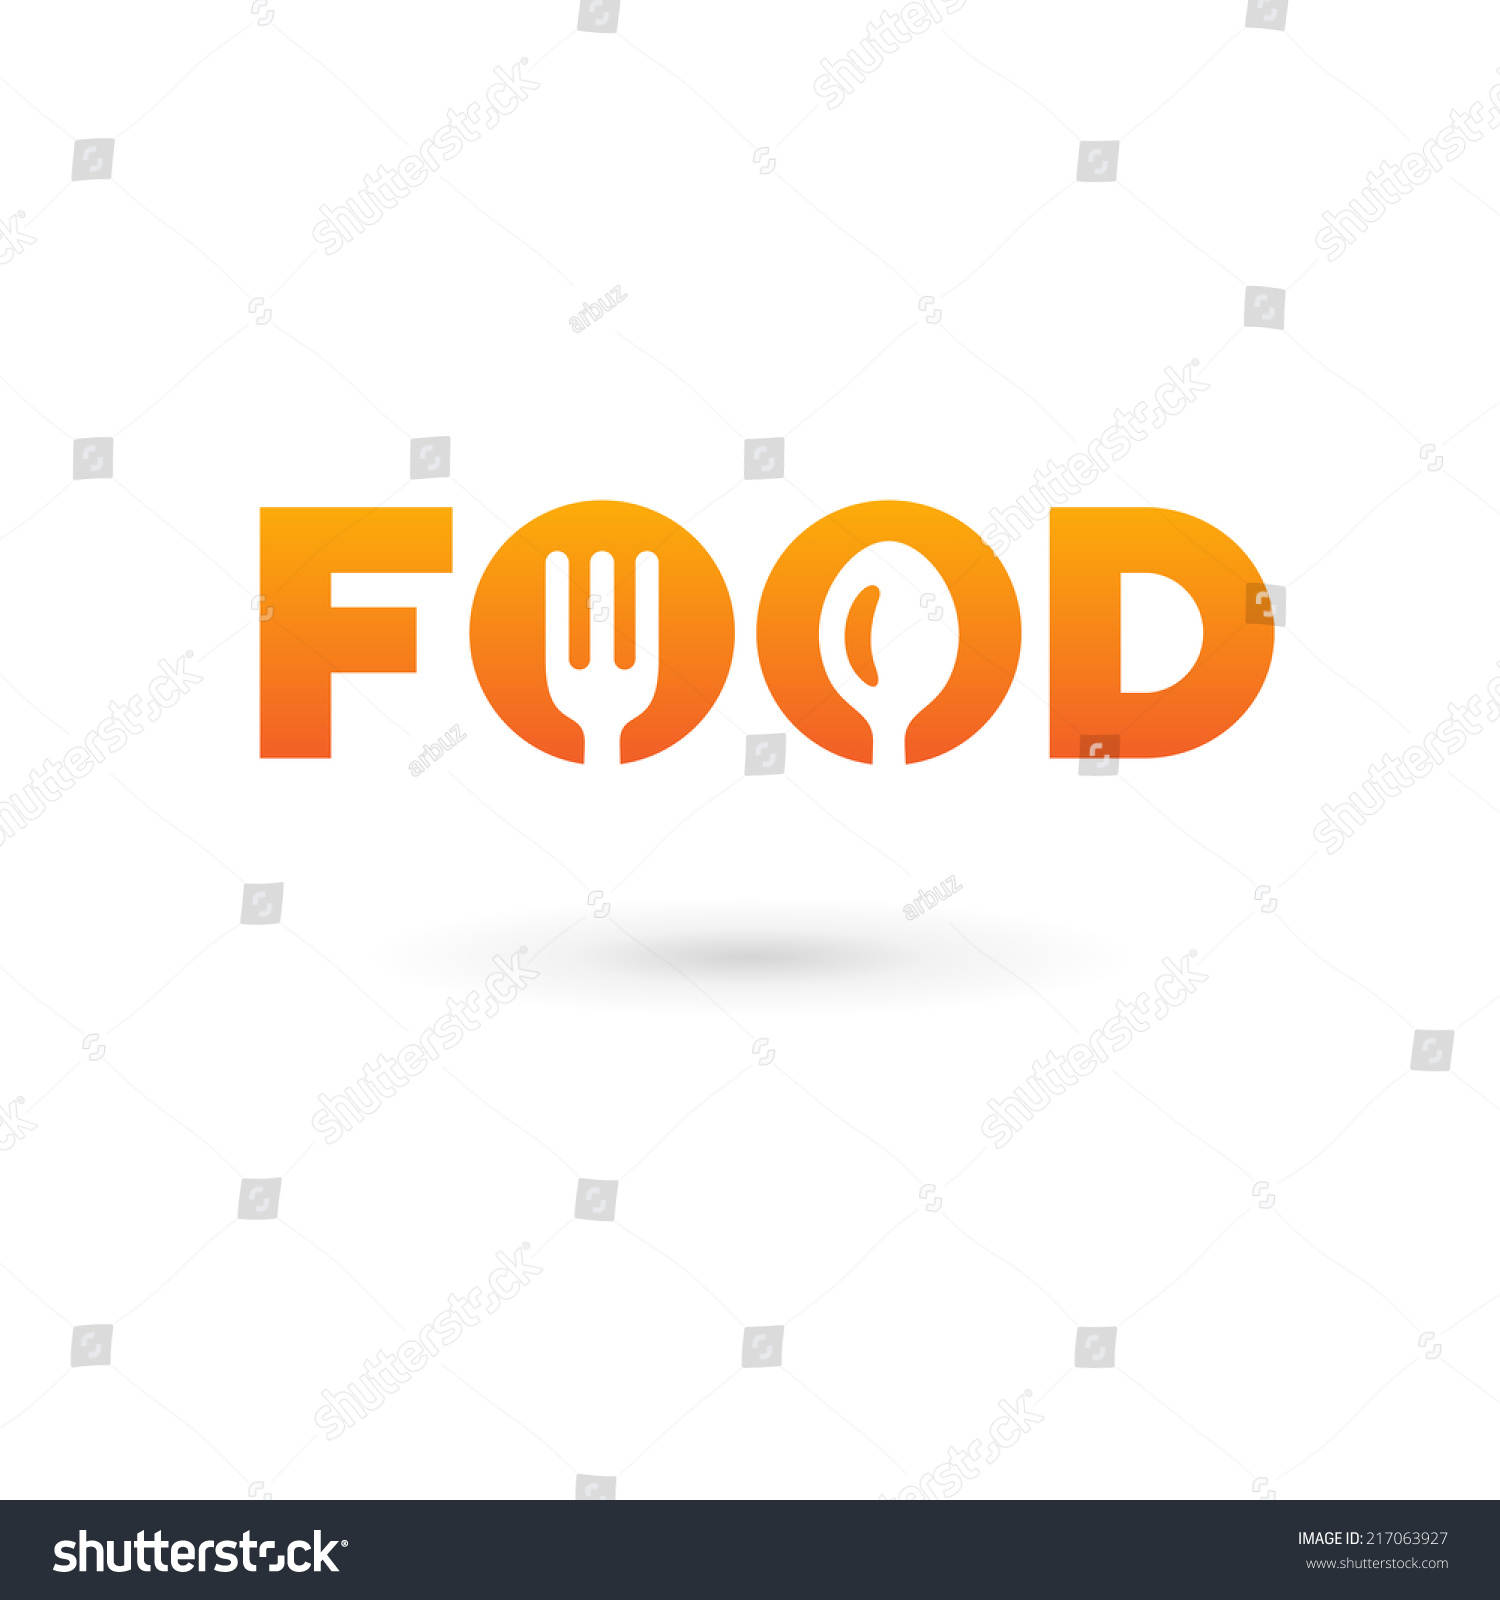 Online image photo editor shutterstock editor for Cuisine words